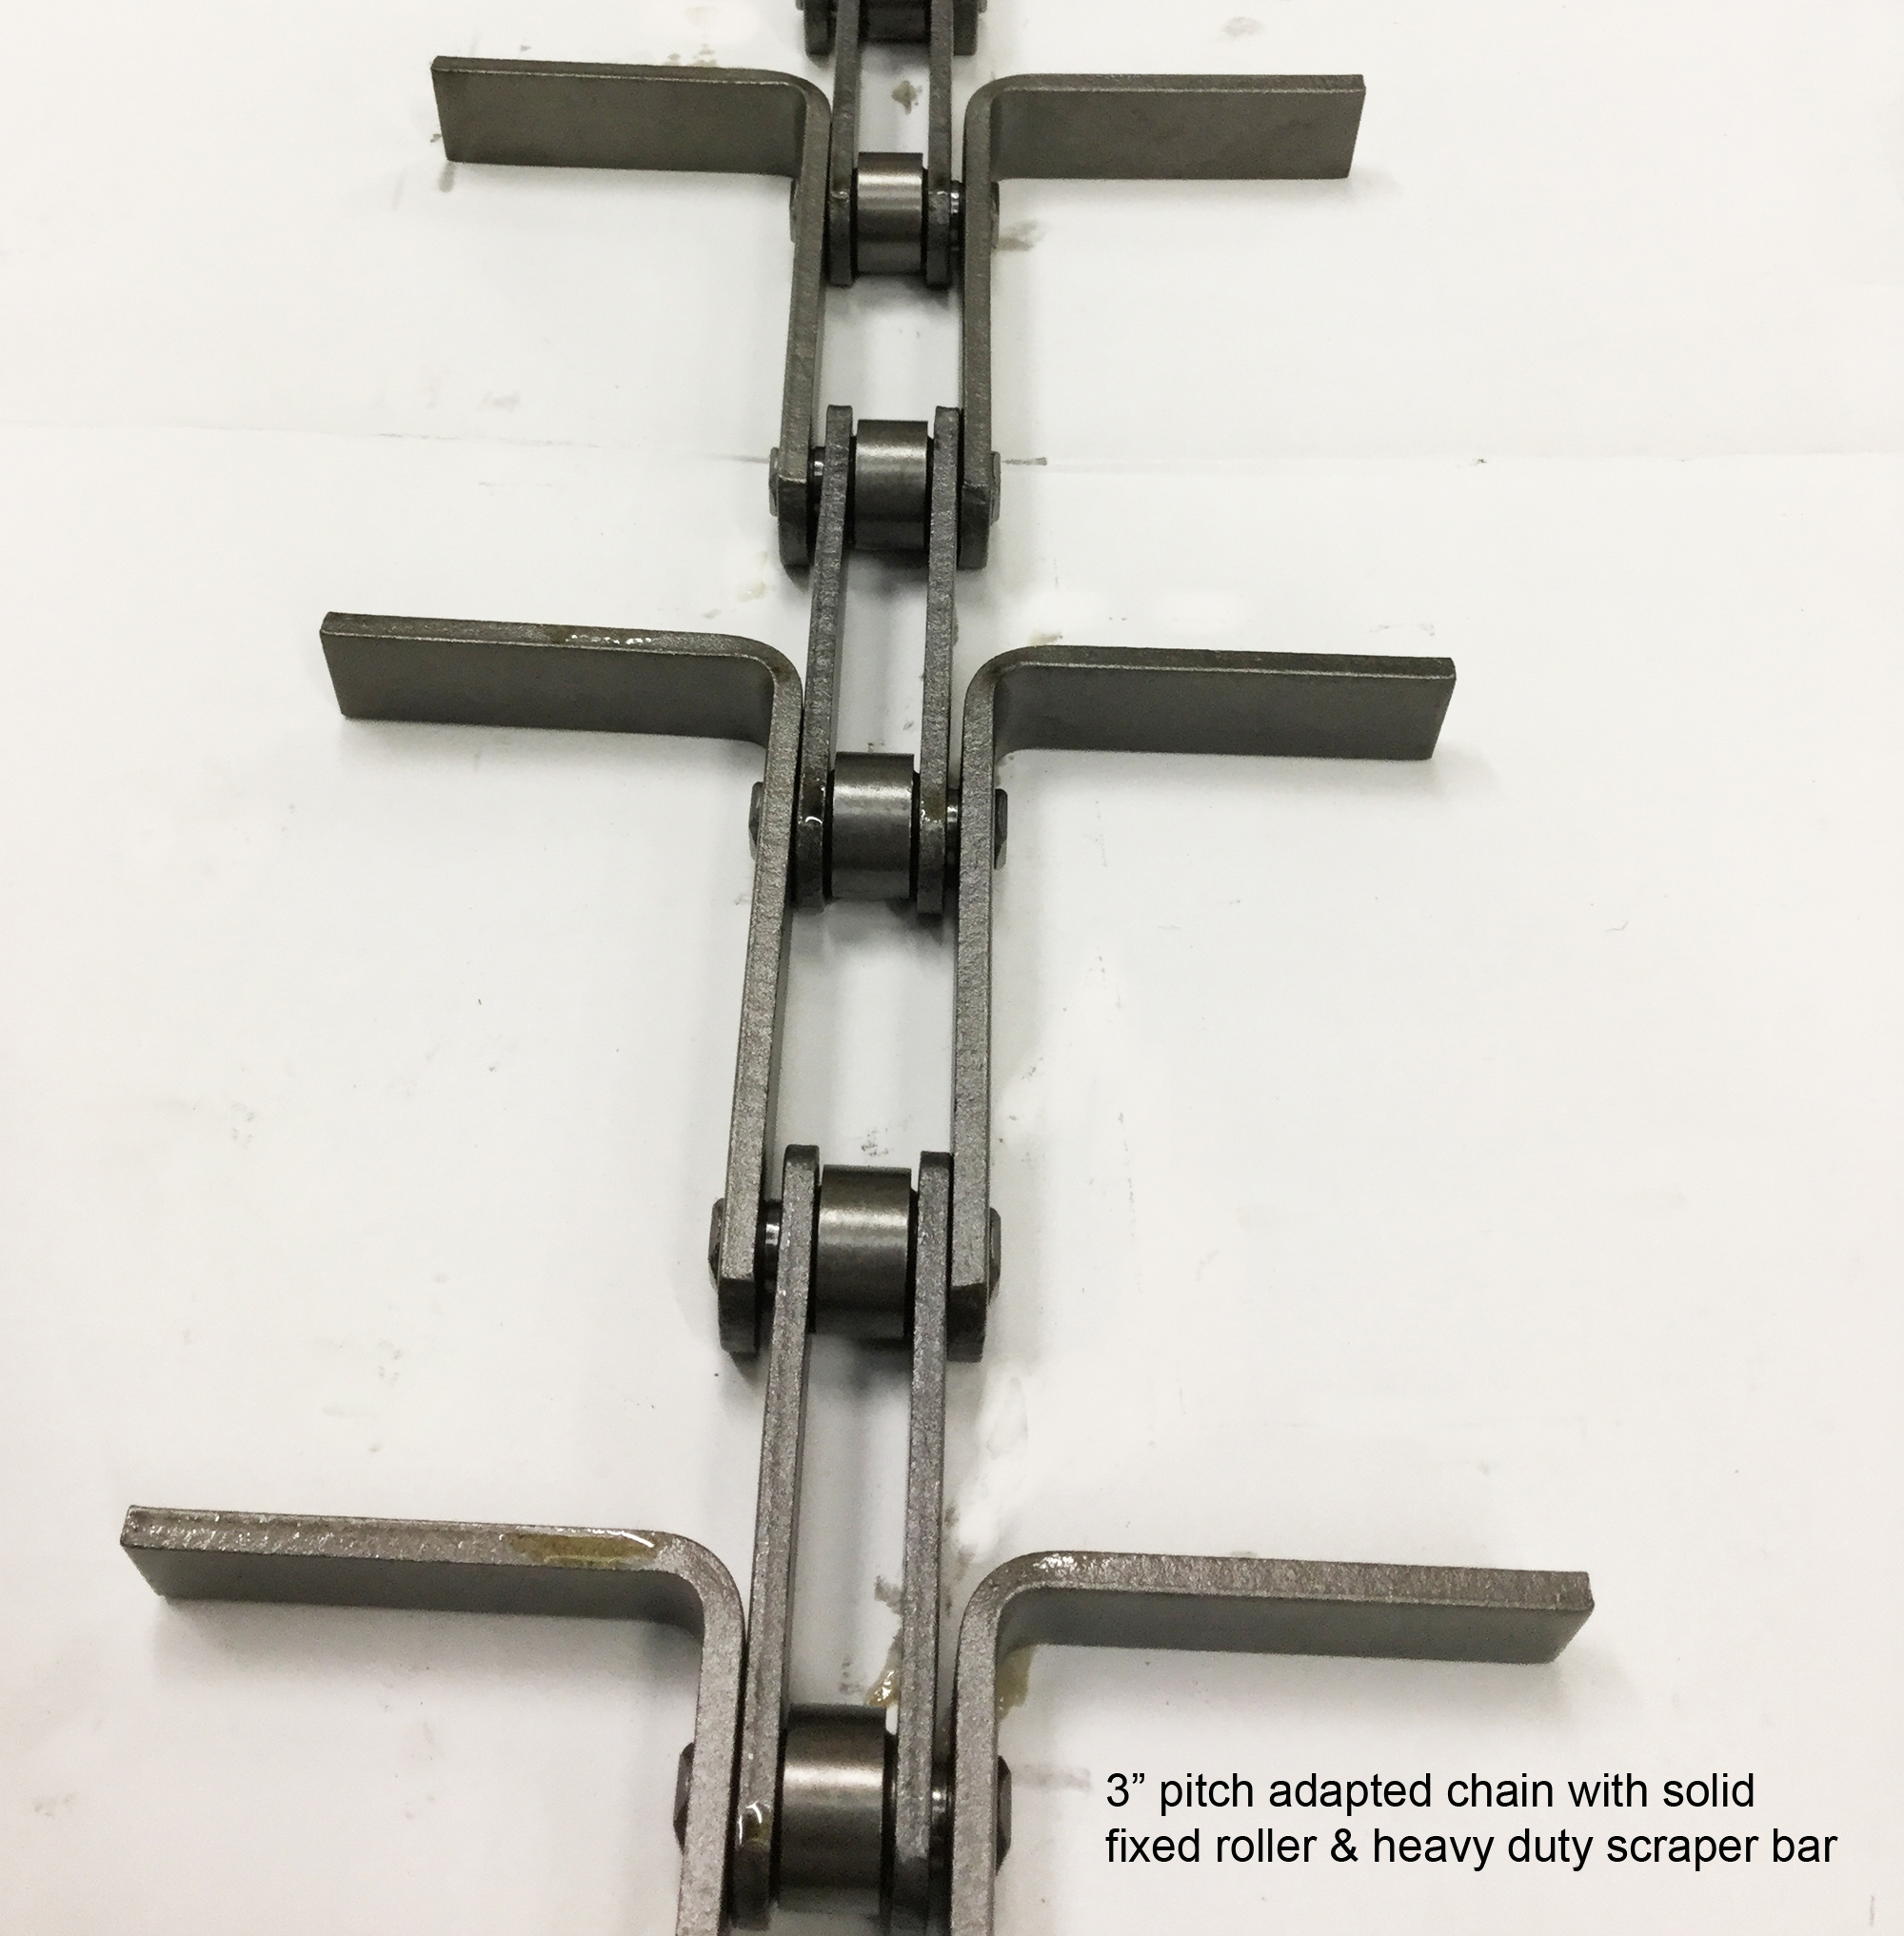 "3"" pitch adapted chain with solid fixed roller & heavy duty scraper bar feature."